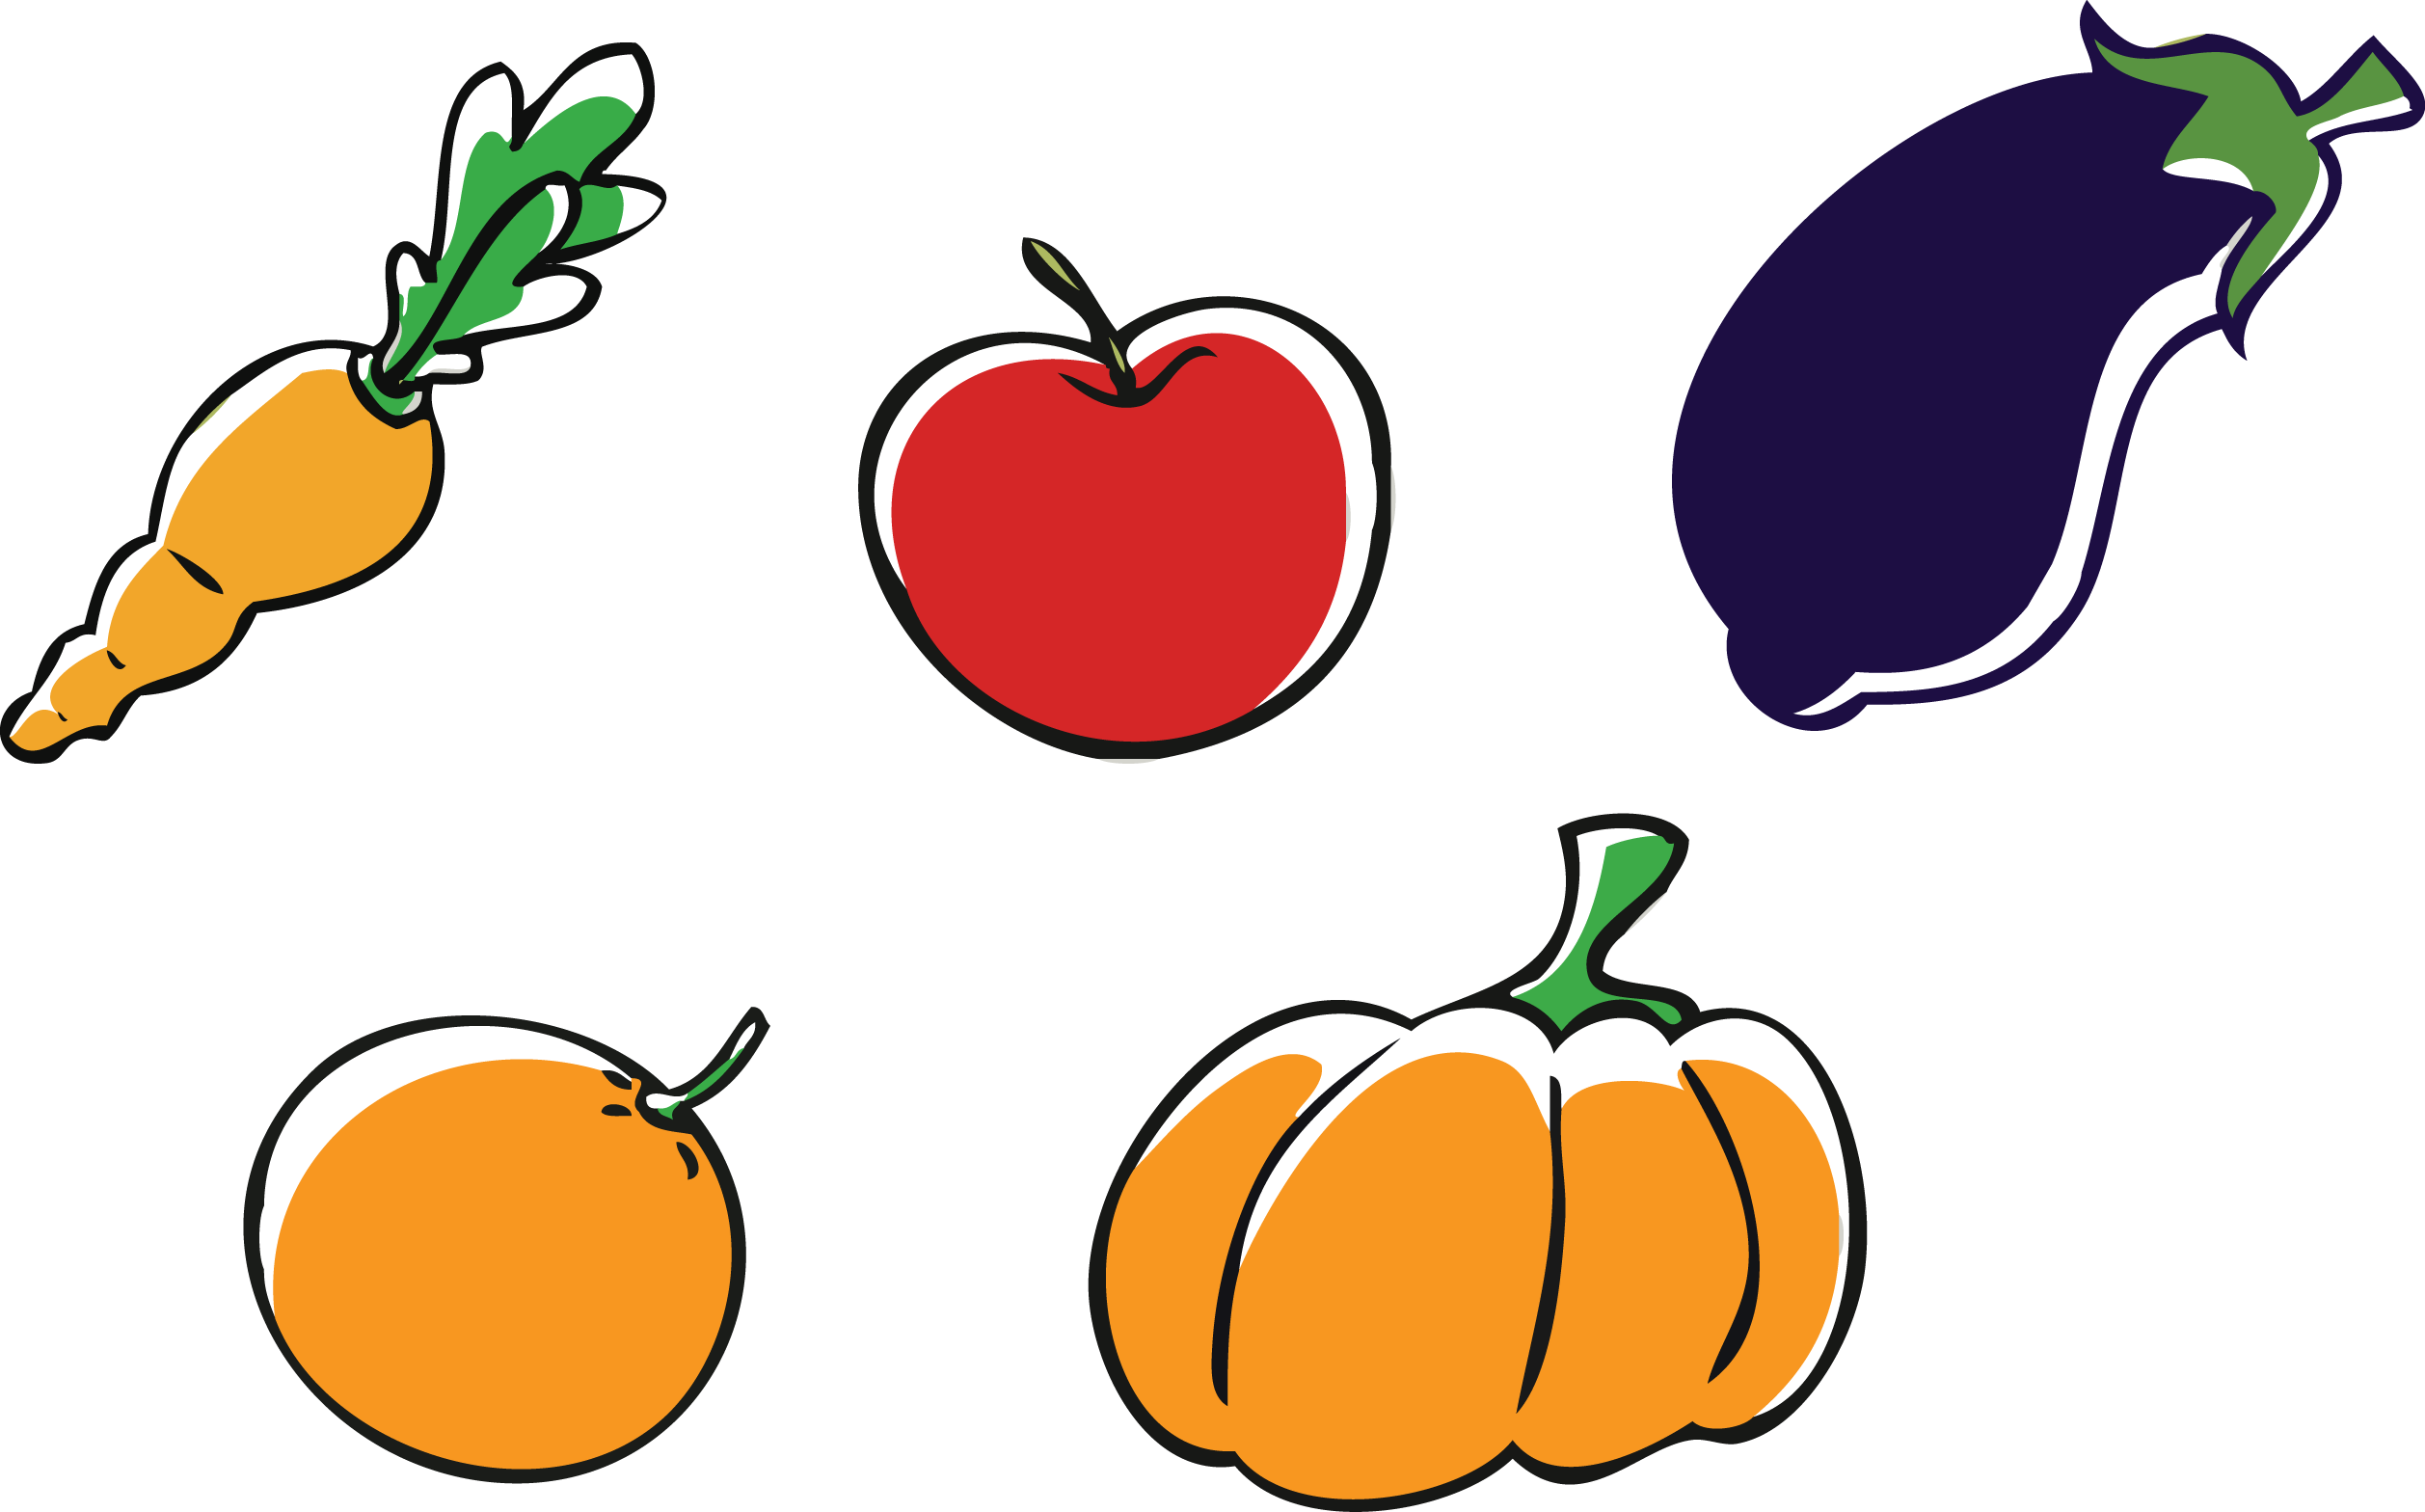 Pumpkin hanging clipart png download Fruit And Veggie Clipart at GetDrawings.com | Free for personal use ... png download